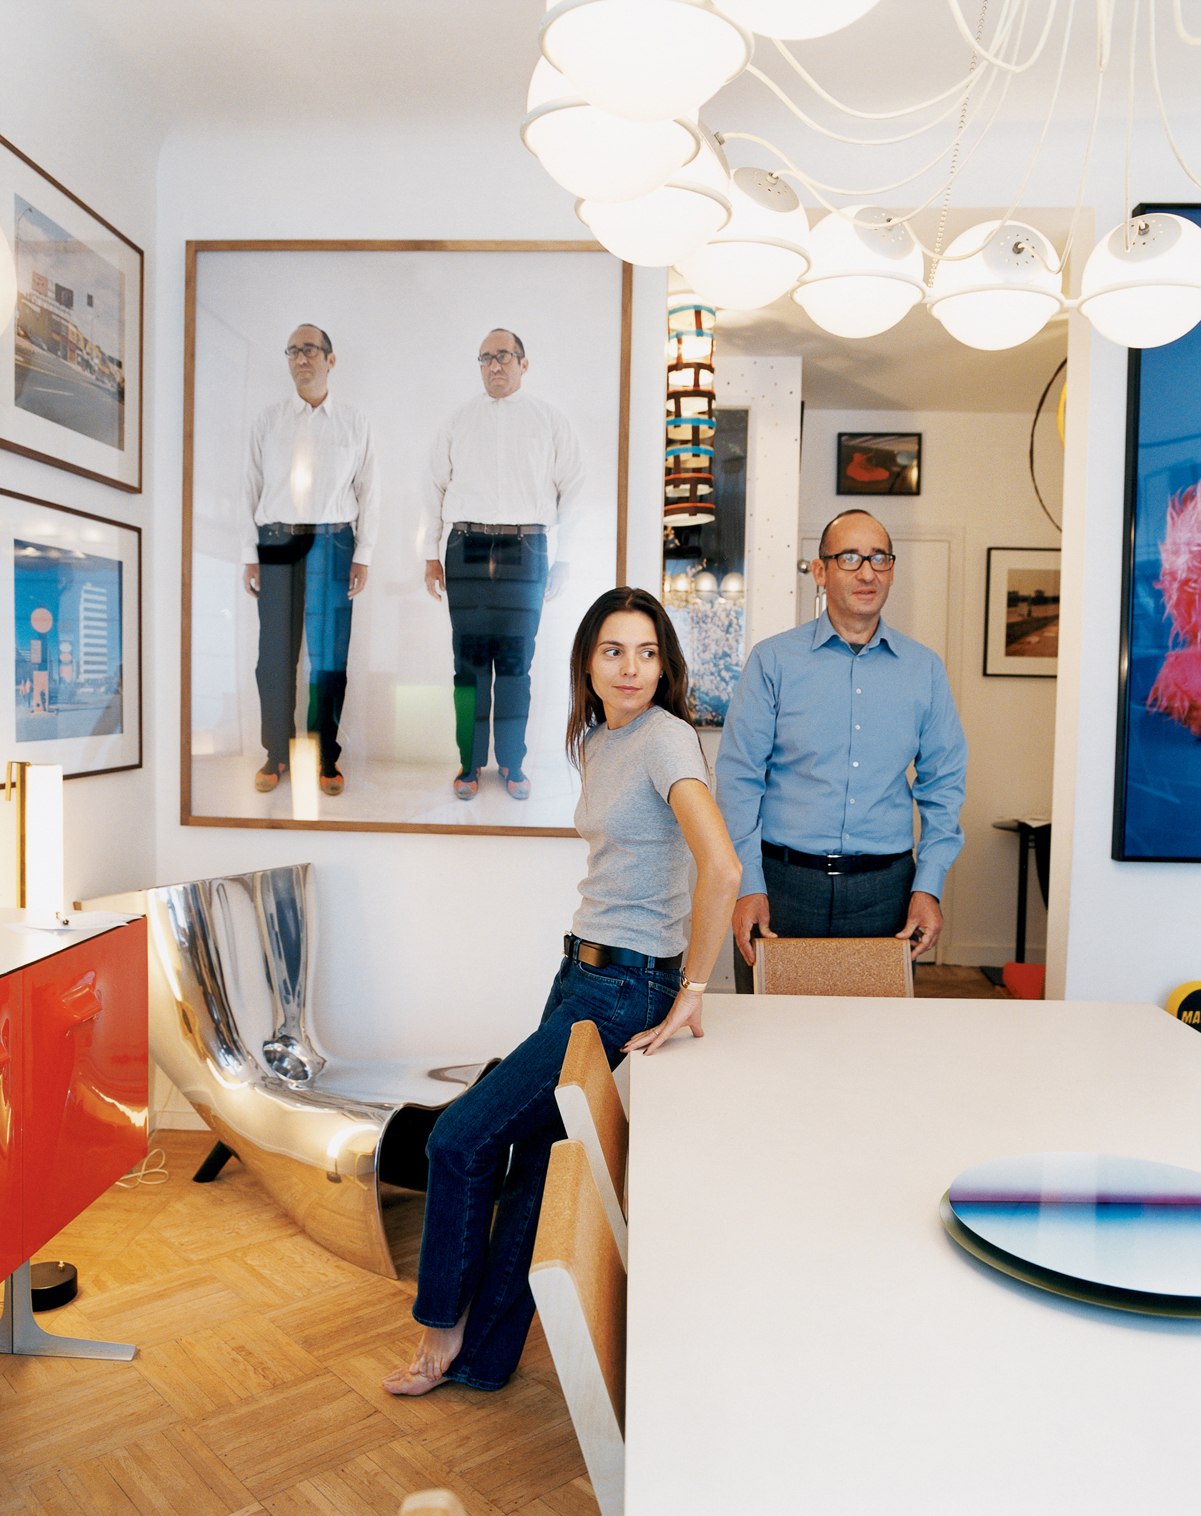 Didier Krzentowski and his wife, Clémence, in the dining room of their Paris flat. The Slim table was designed by Martin Szekely for a Galerie Kreo exhibition in 1999. On the wall, above a Marc Newson Alufelt chair, is a photograph of Krzentowski by Erwin